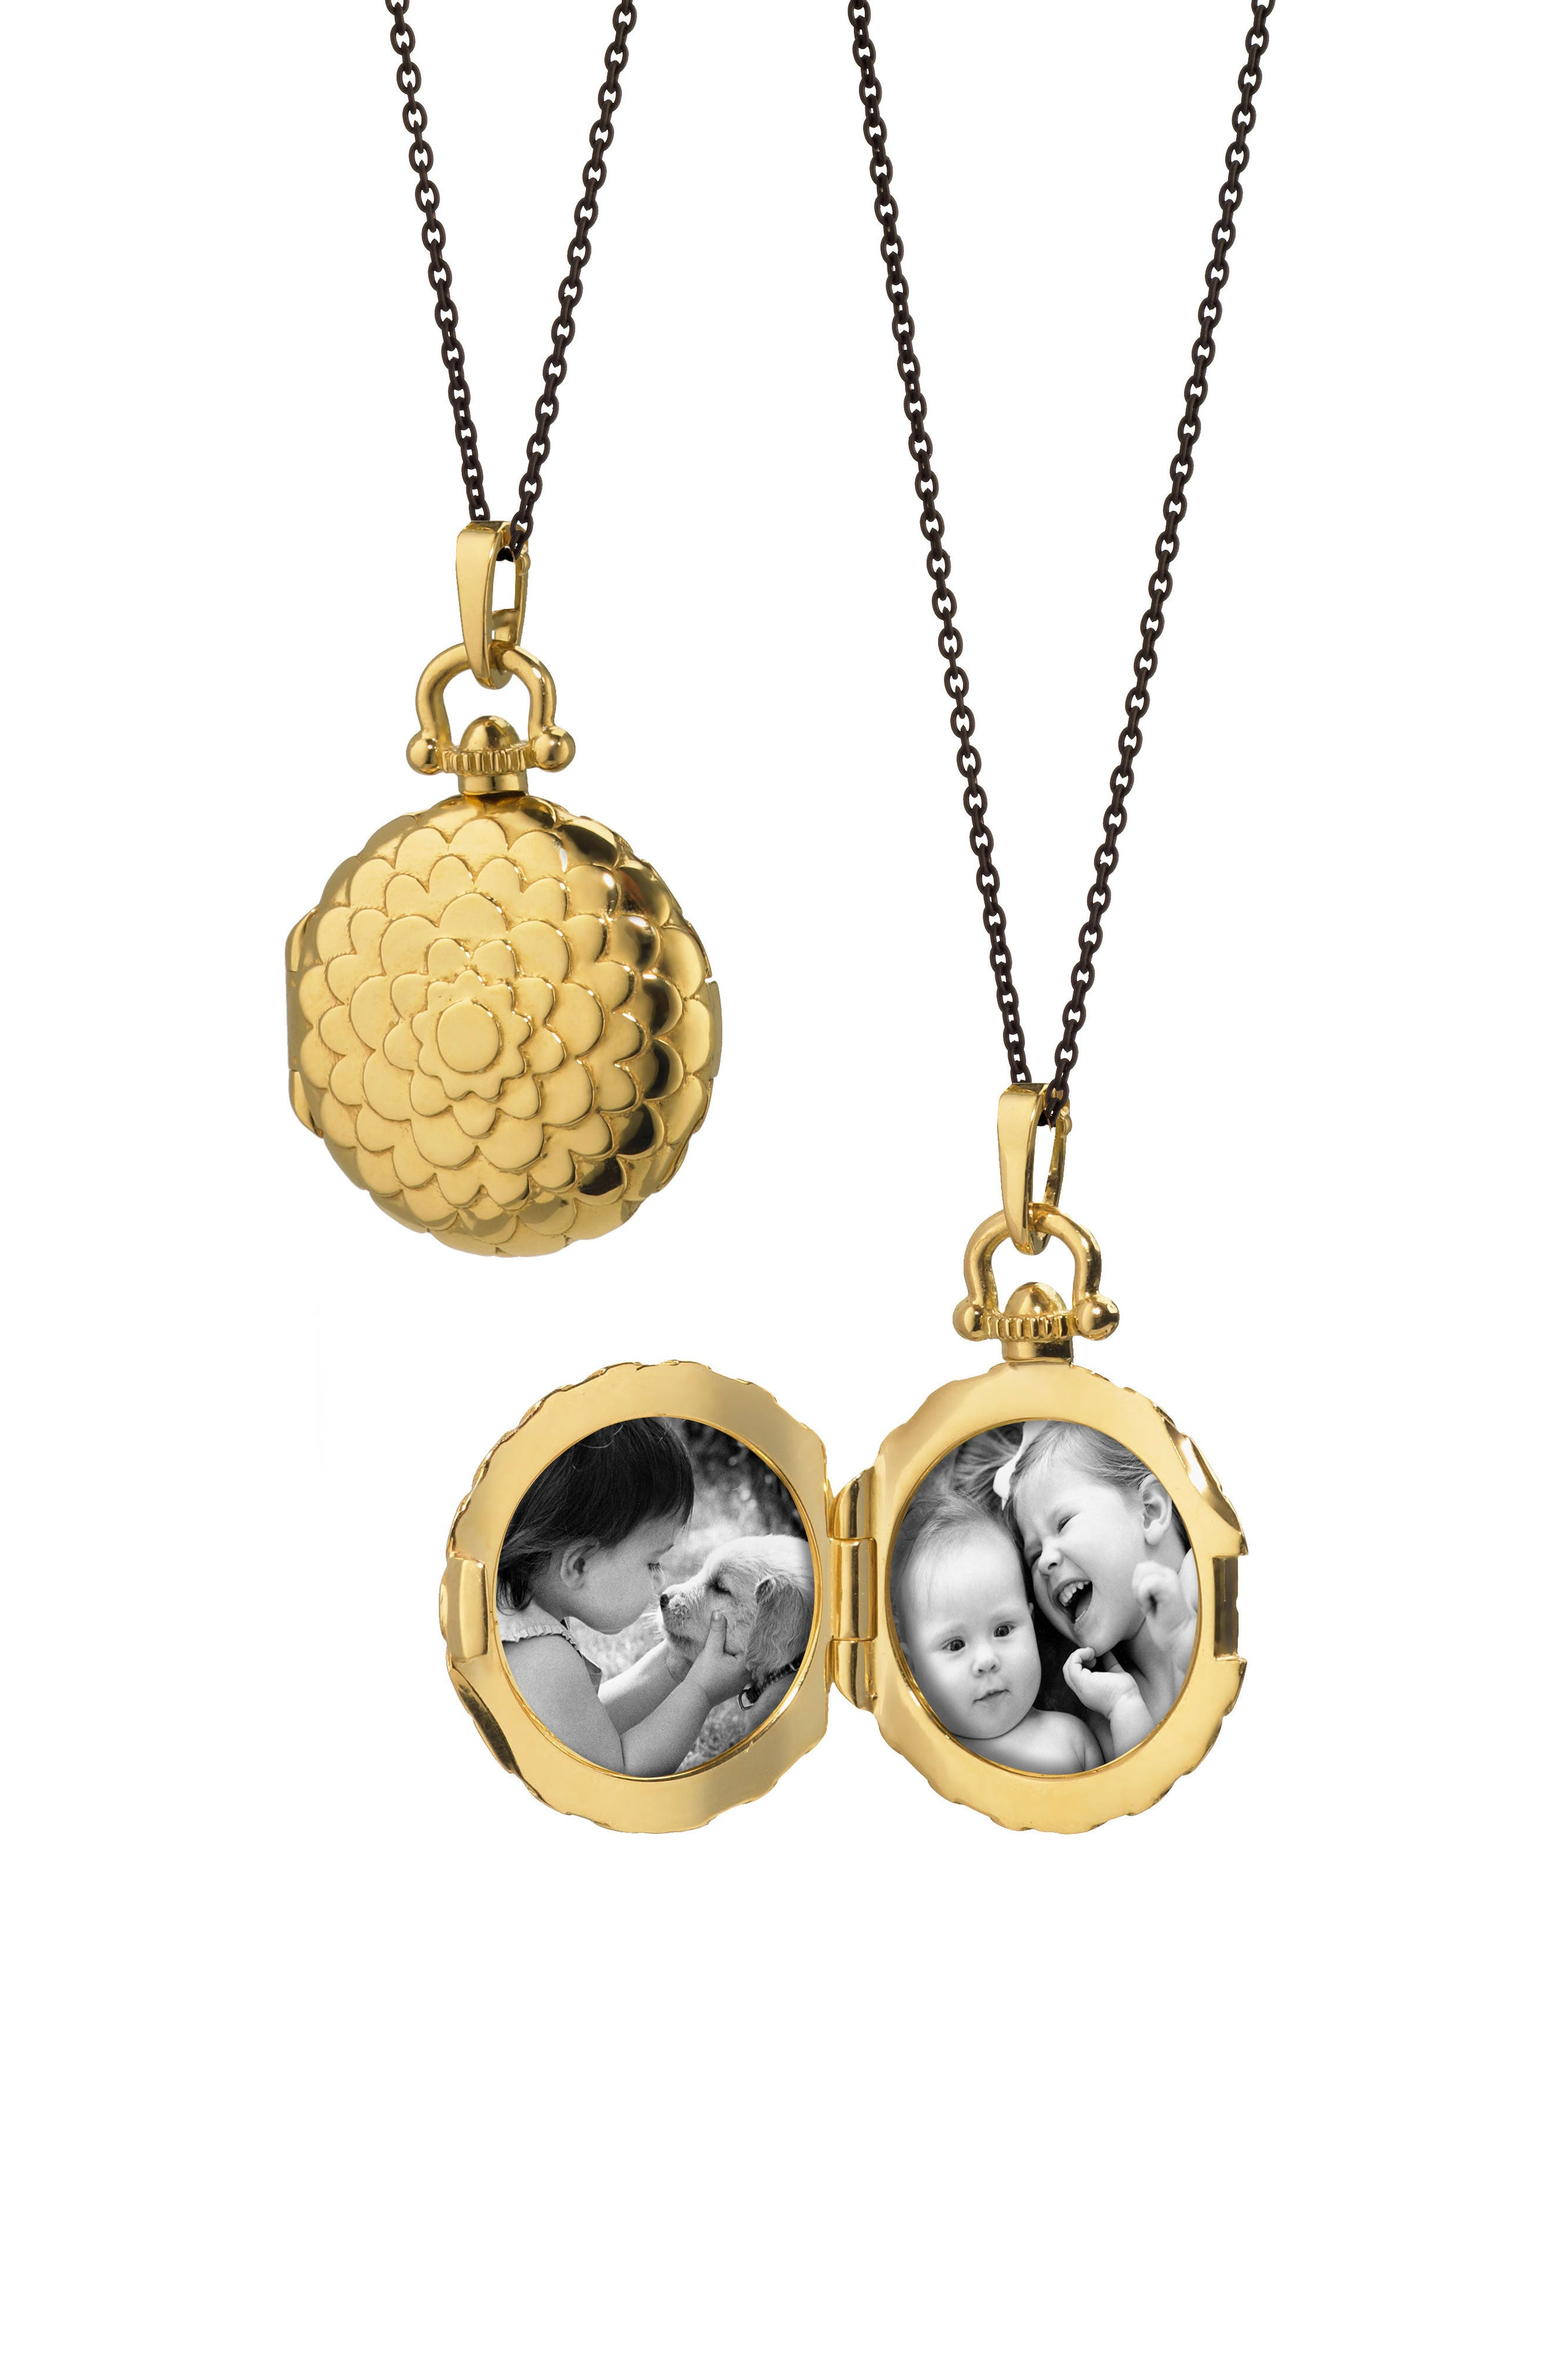 Scalloped Locket Necklace,                         Main,                         color, 18K YELLOW GOLD/ BLACK STEEL